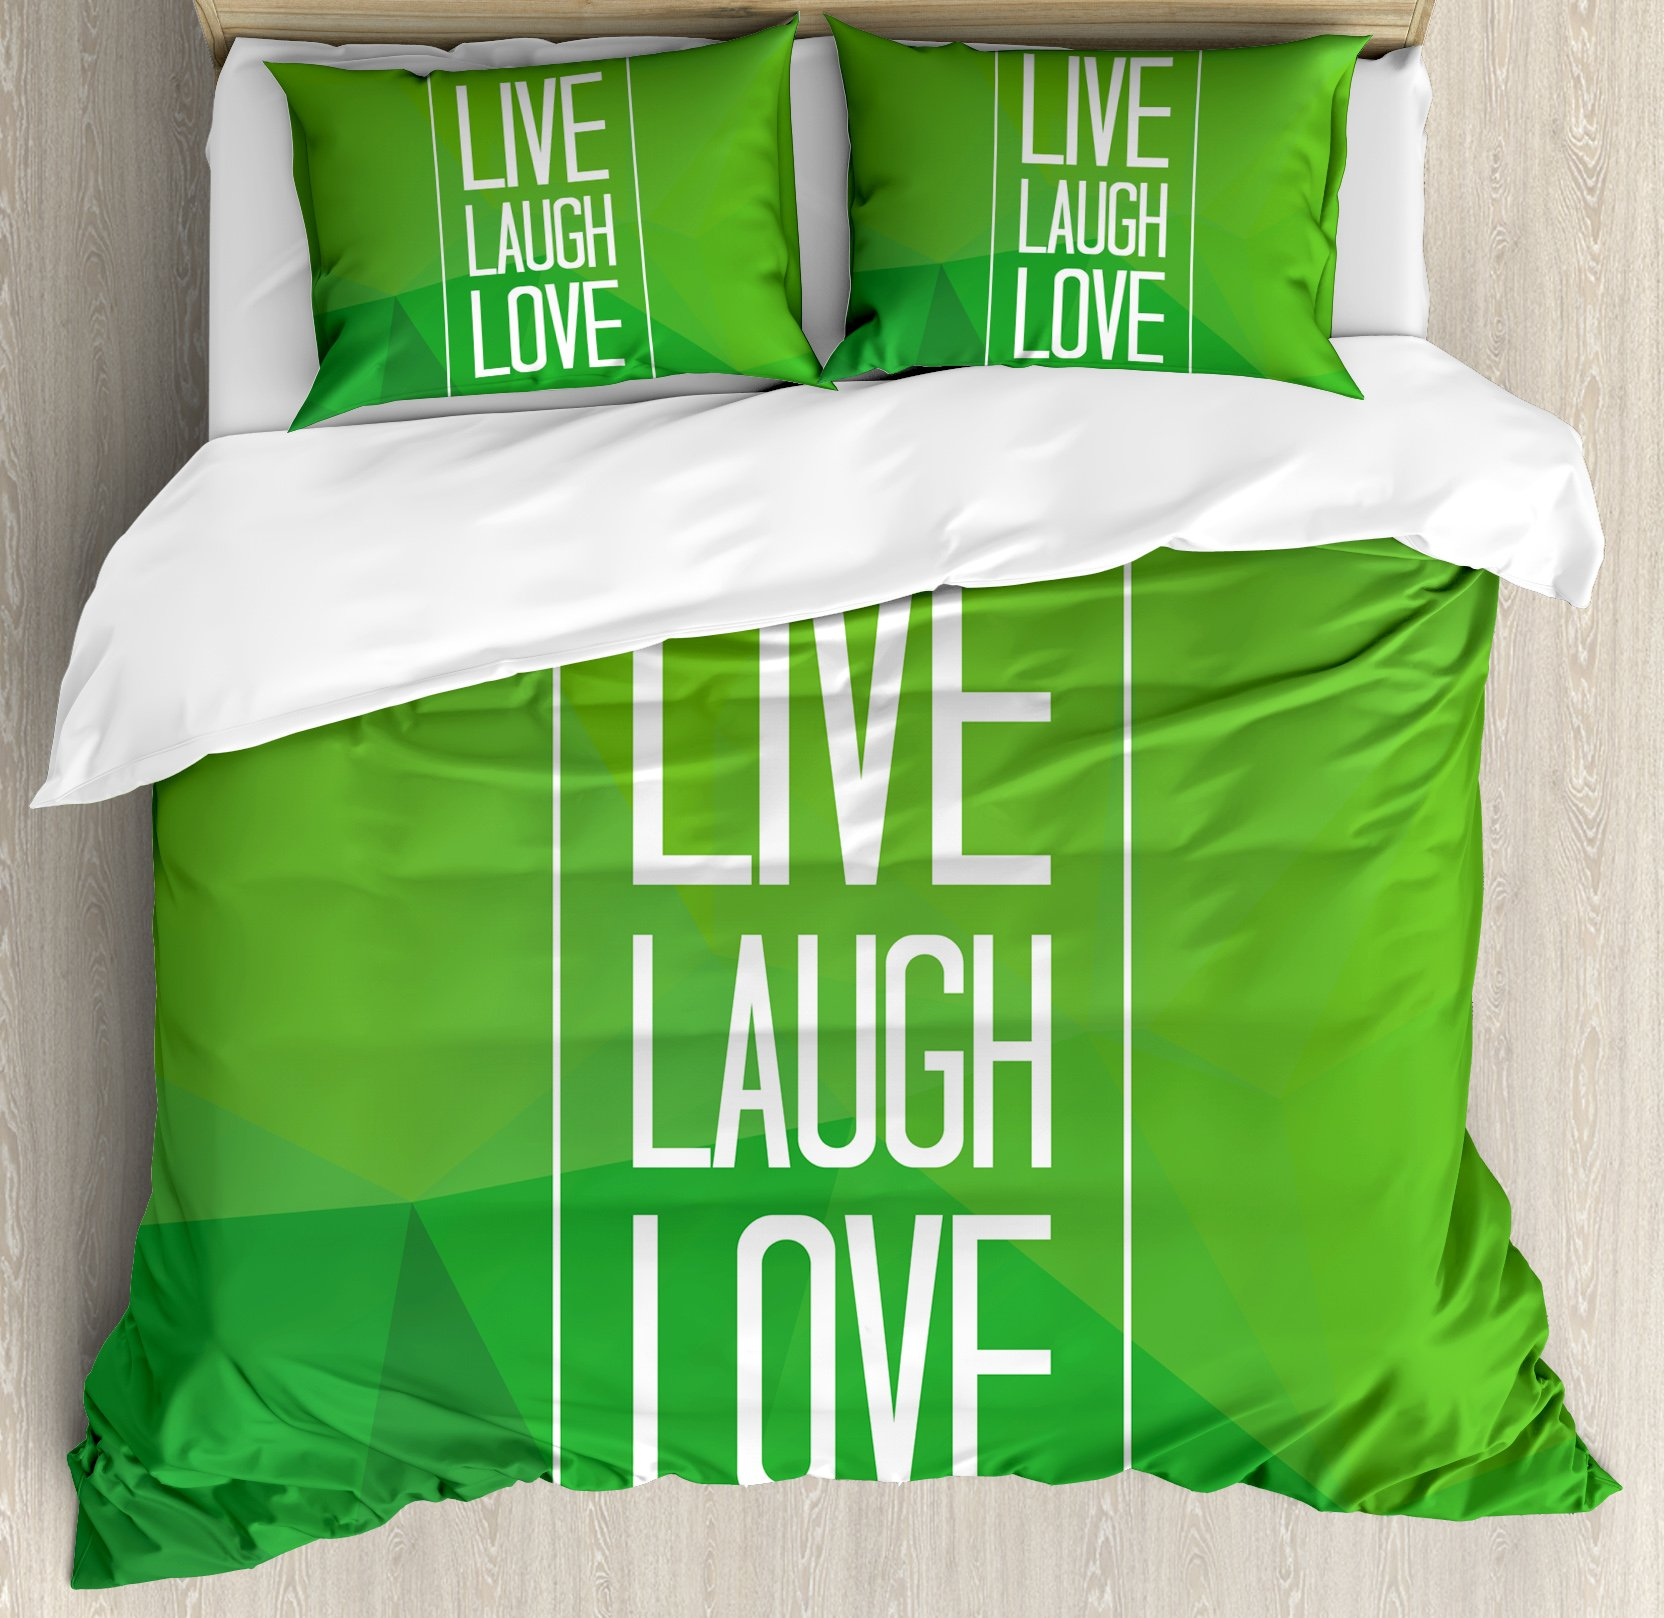 Live Laugh Love Duvet Cover Set Queen Size by Ambesonne, Triangular Polygon Background with Rectangle Frame with Motivation, Decorative 3 Piece Bedding Set with 2 Pillow Shams, Apple Green White